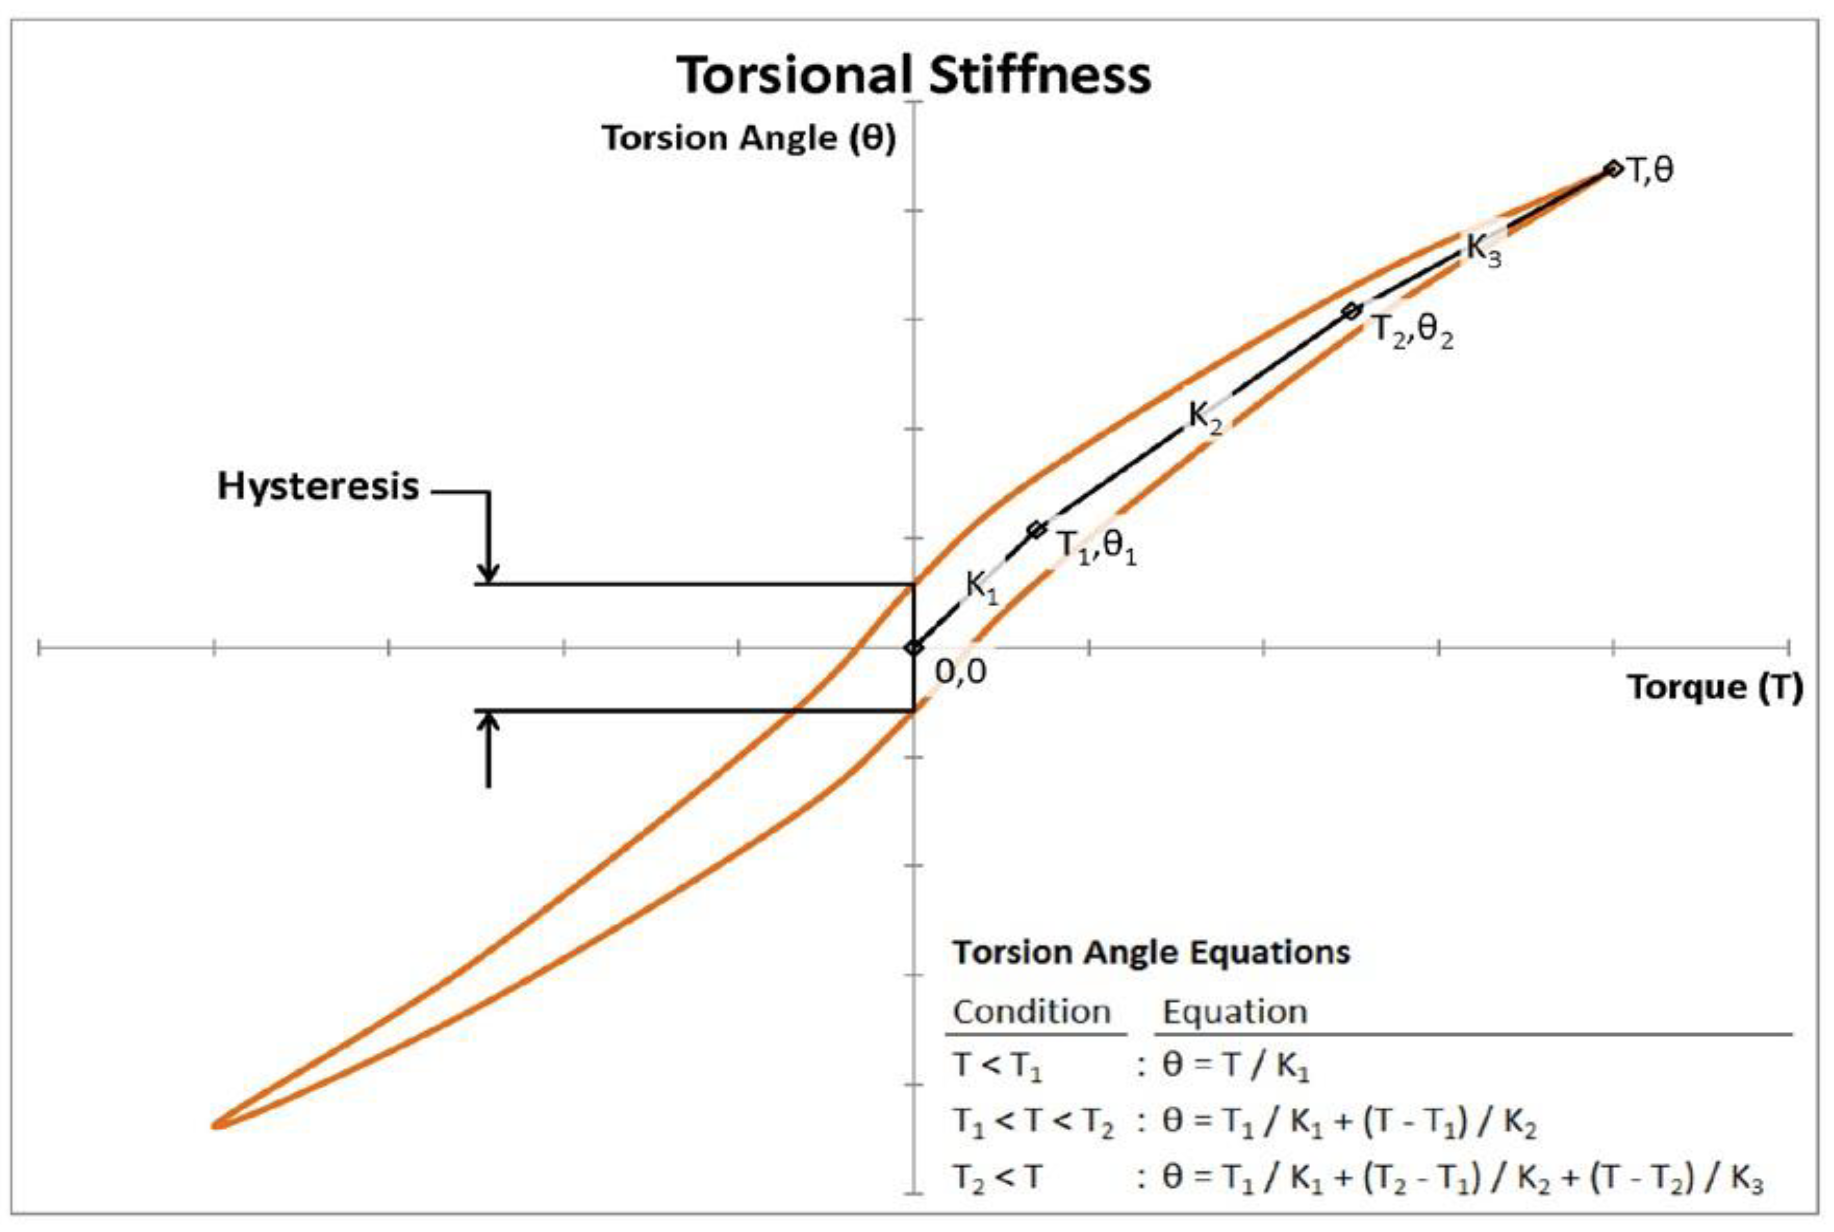 Figure 1 - Torsional Stiffness as a function Torque and Angle